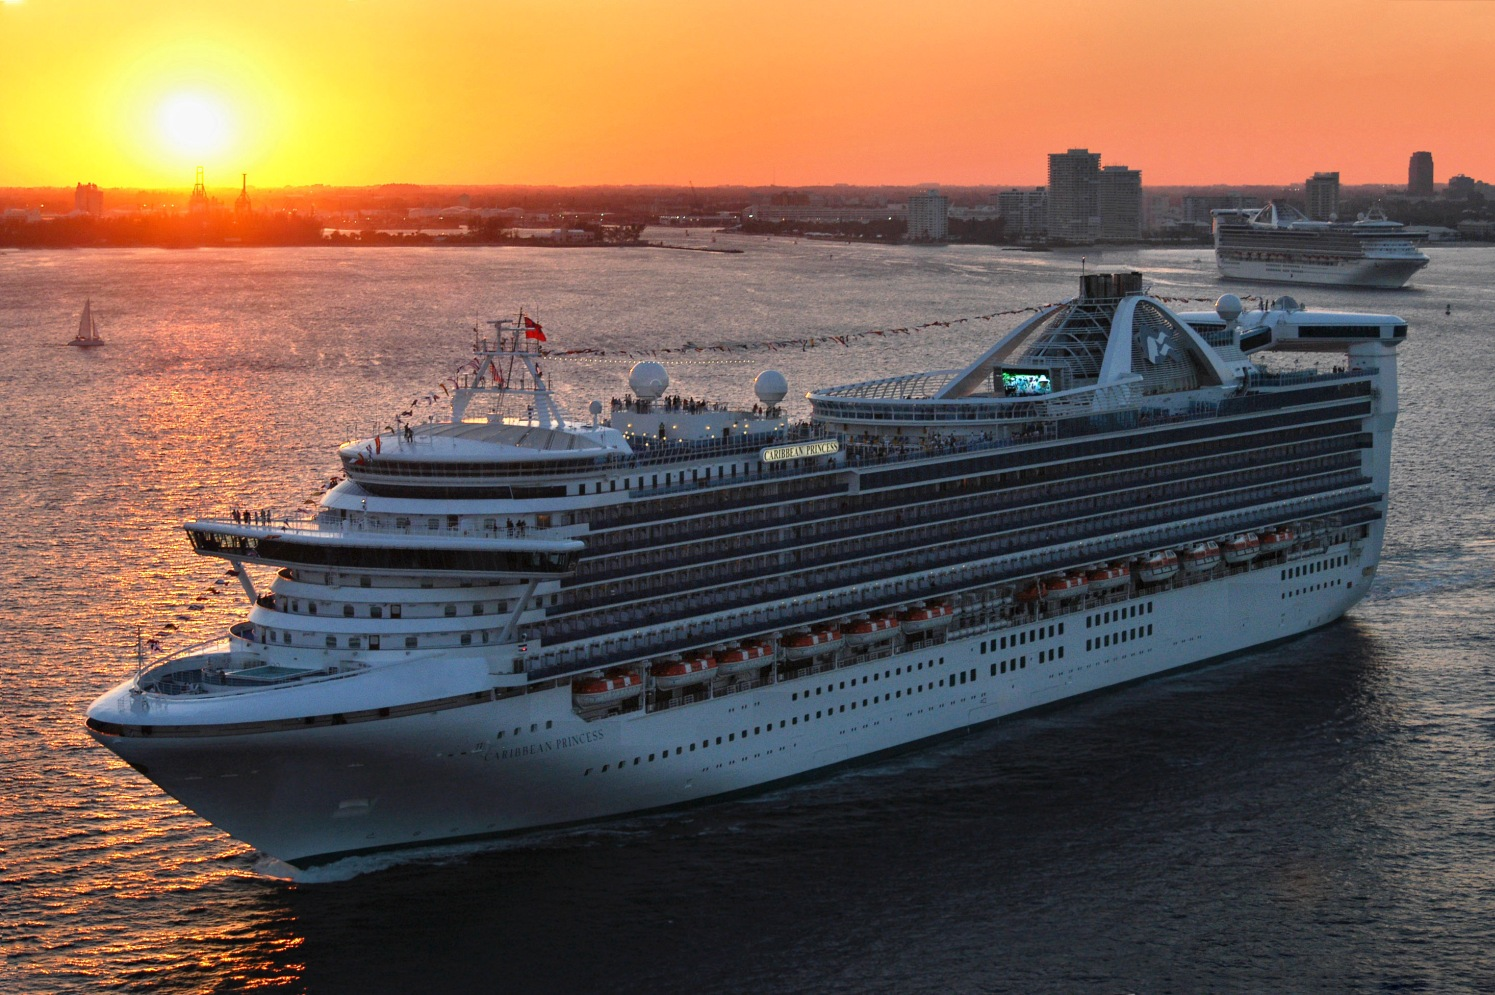 Princess Cruise Lines Cyber Sale Begins November 17th !